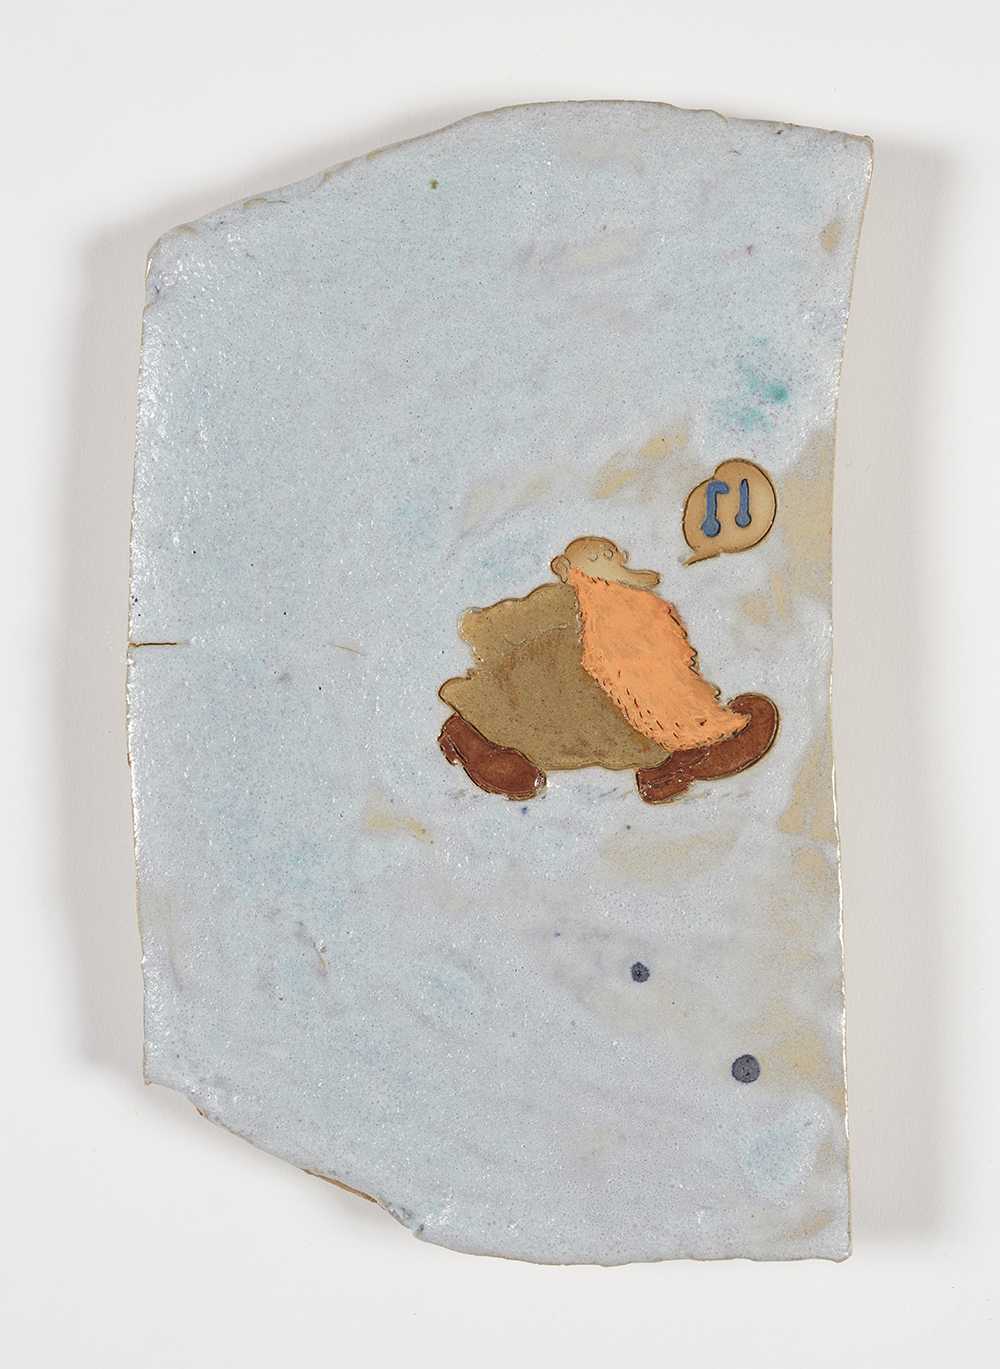 Kevin McNamee-Tweed.<em> Whistler</em>, 2019. Glazed ceramic, 12 1/2 x 7 1/2 inches (31.8 x 19.1 cm)